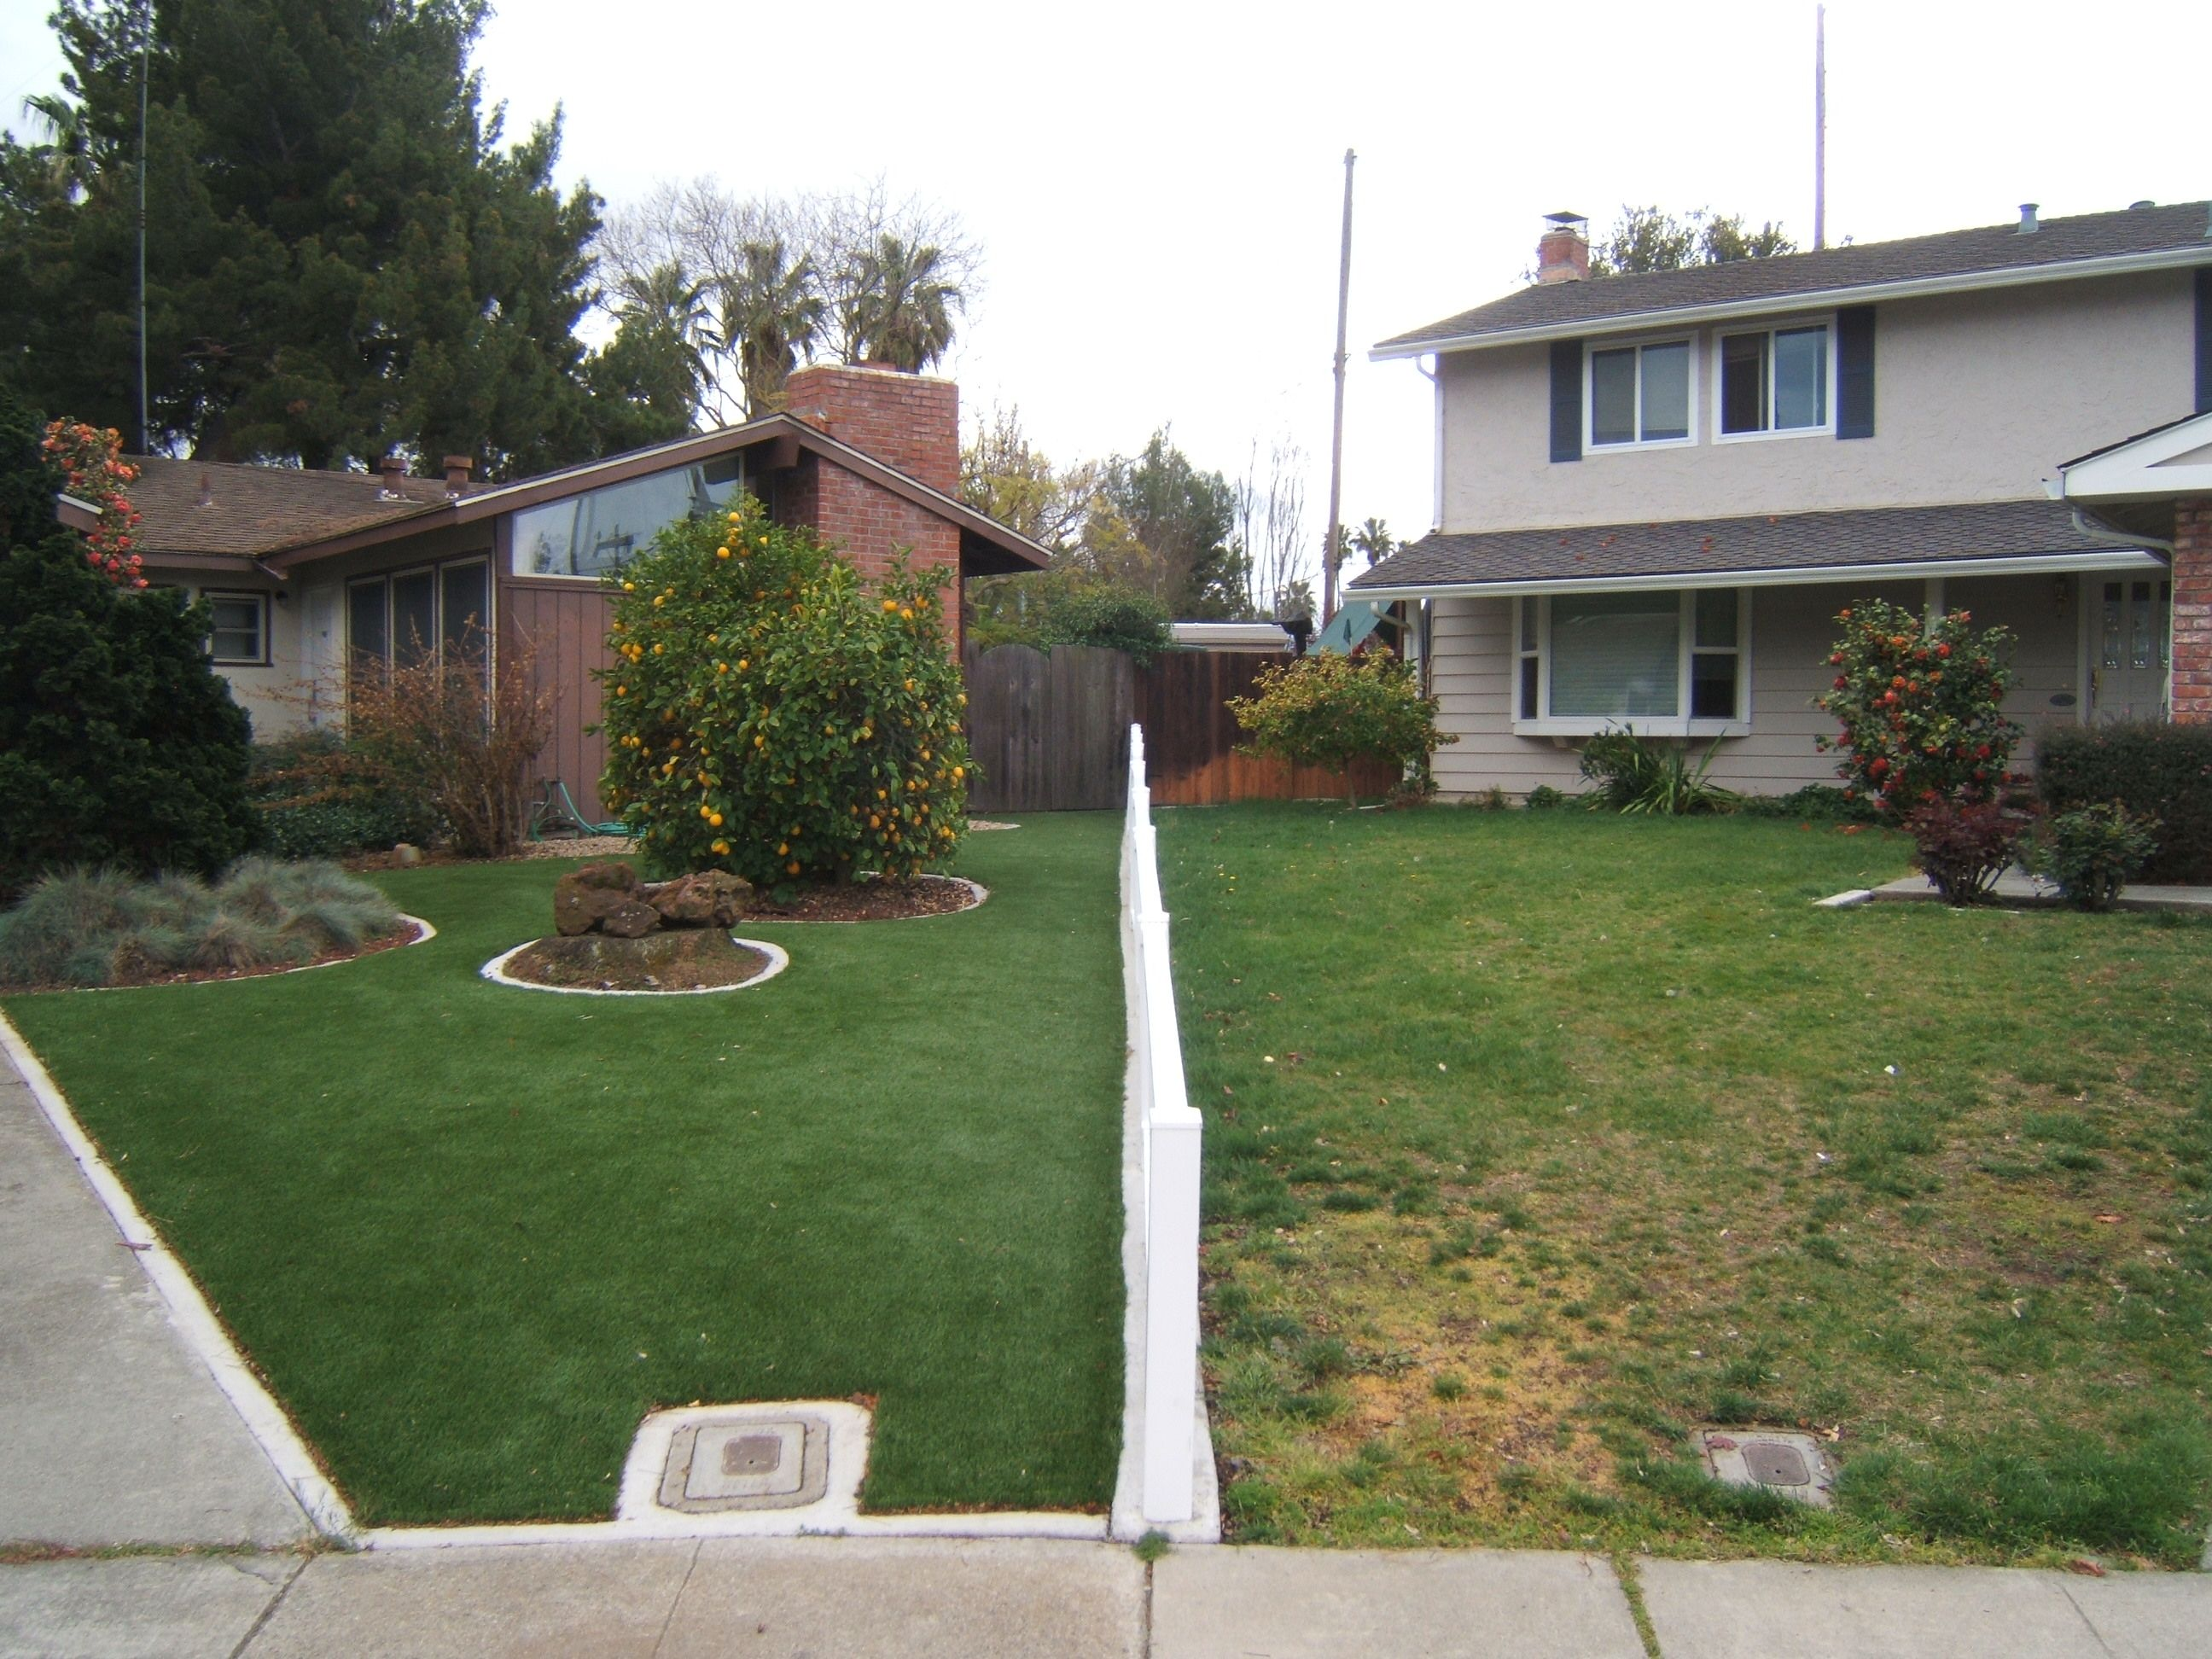 Take about lawn envy. We think the neighbors could use an